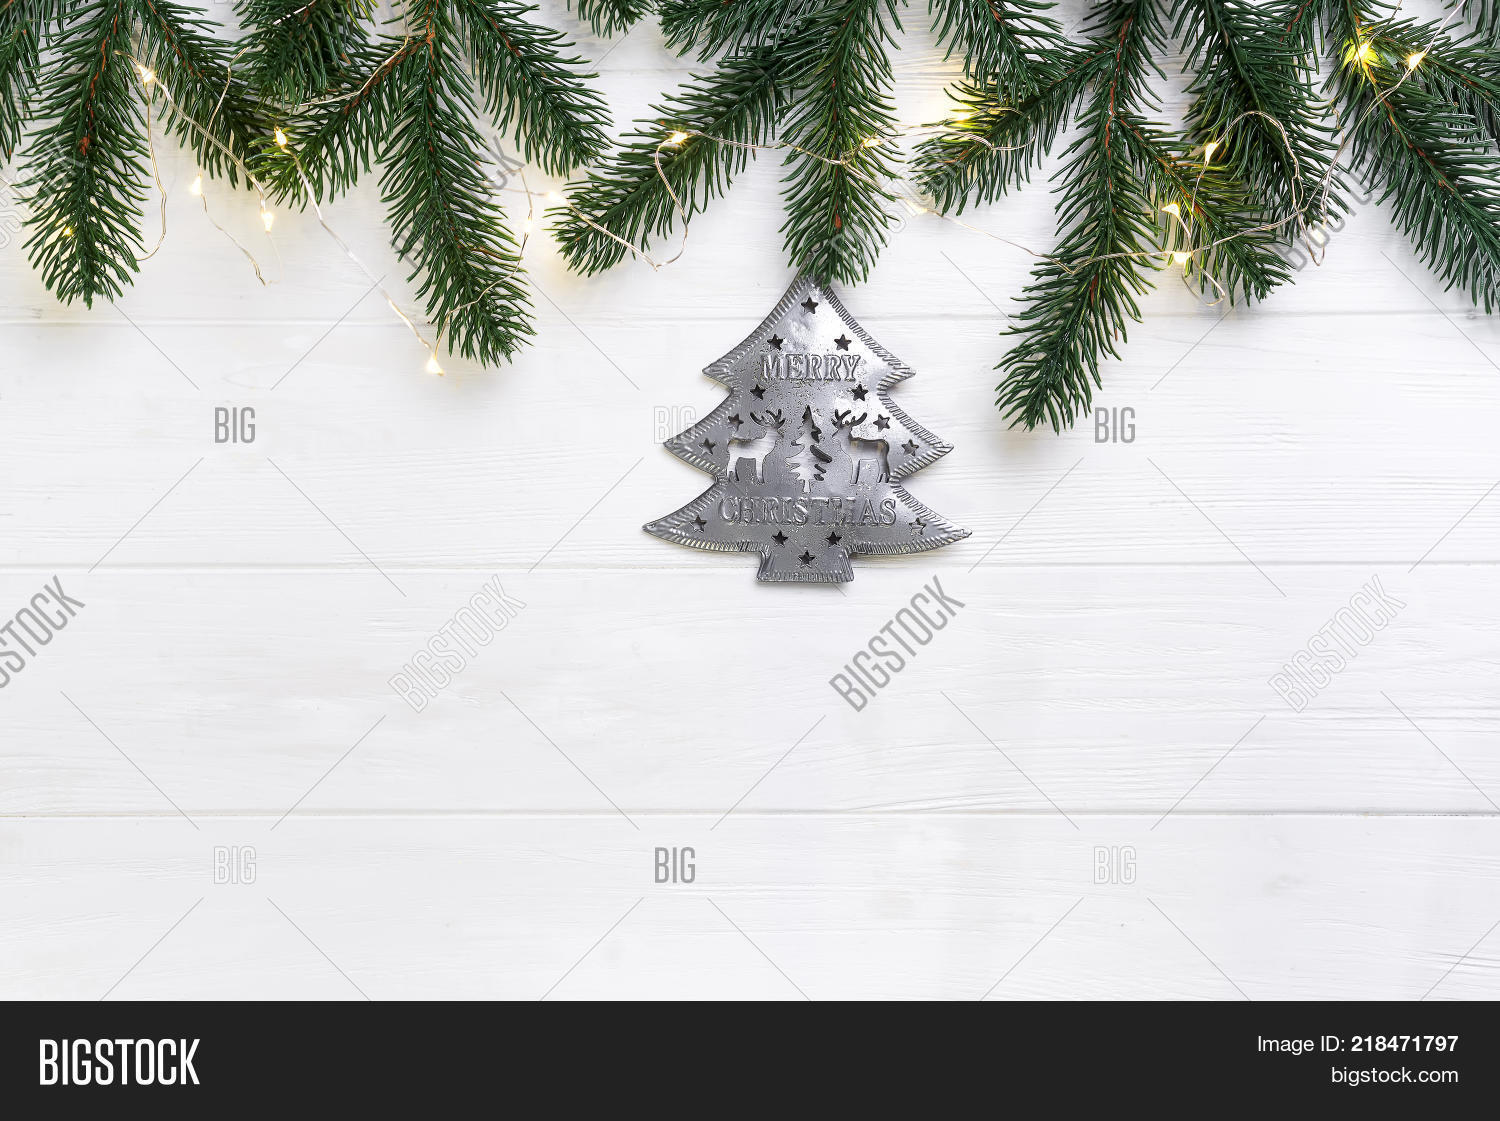 Christmas Composition Image & Photo (Free Trial) | Bigstock